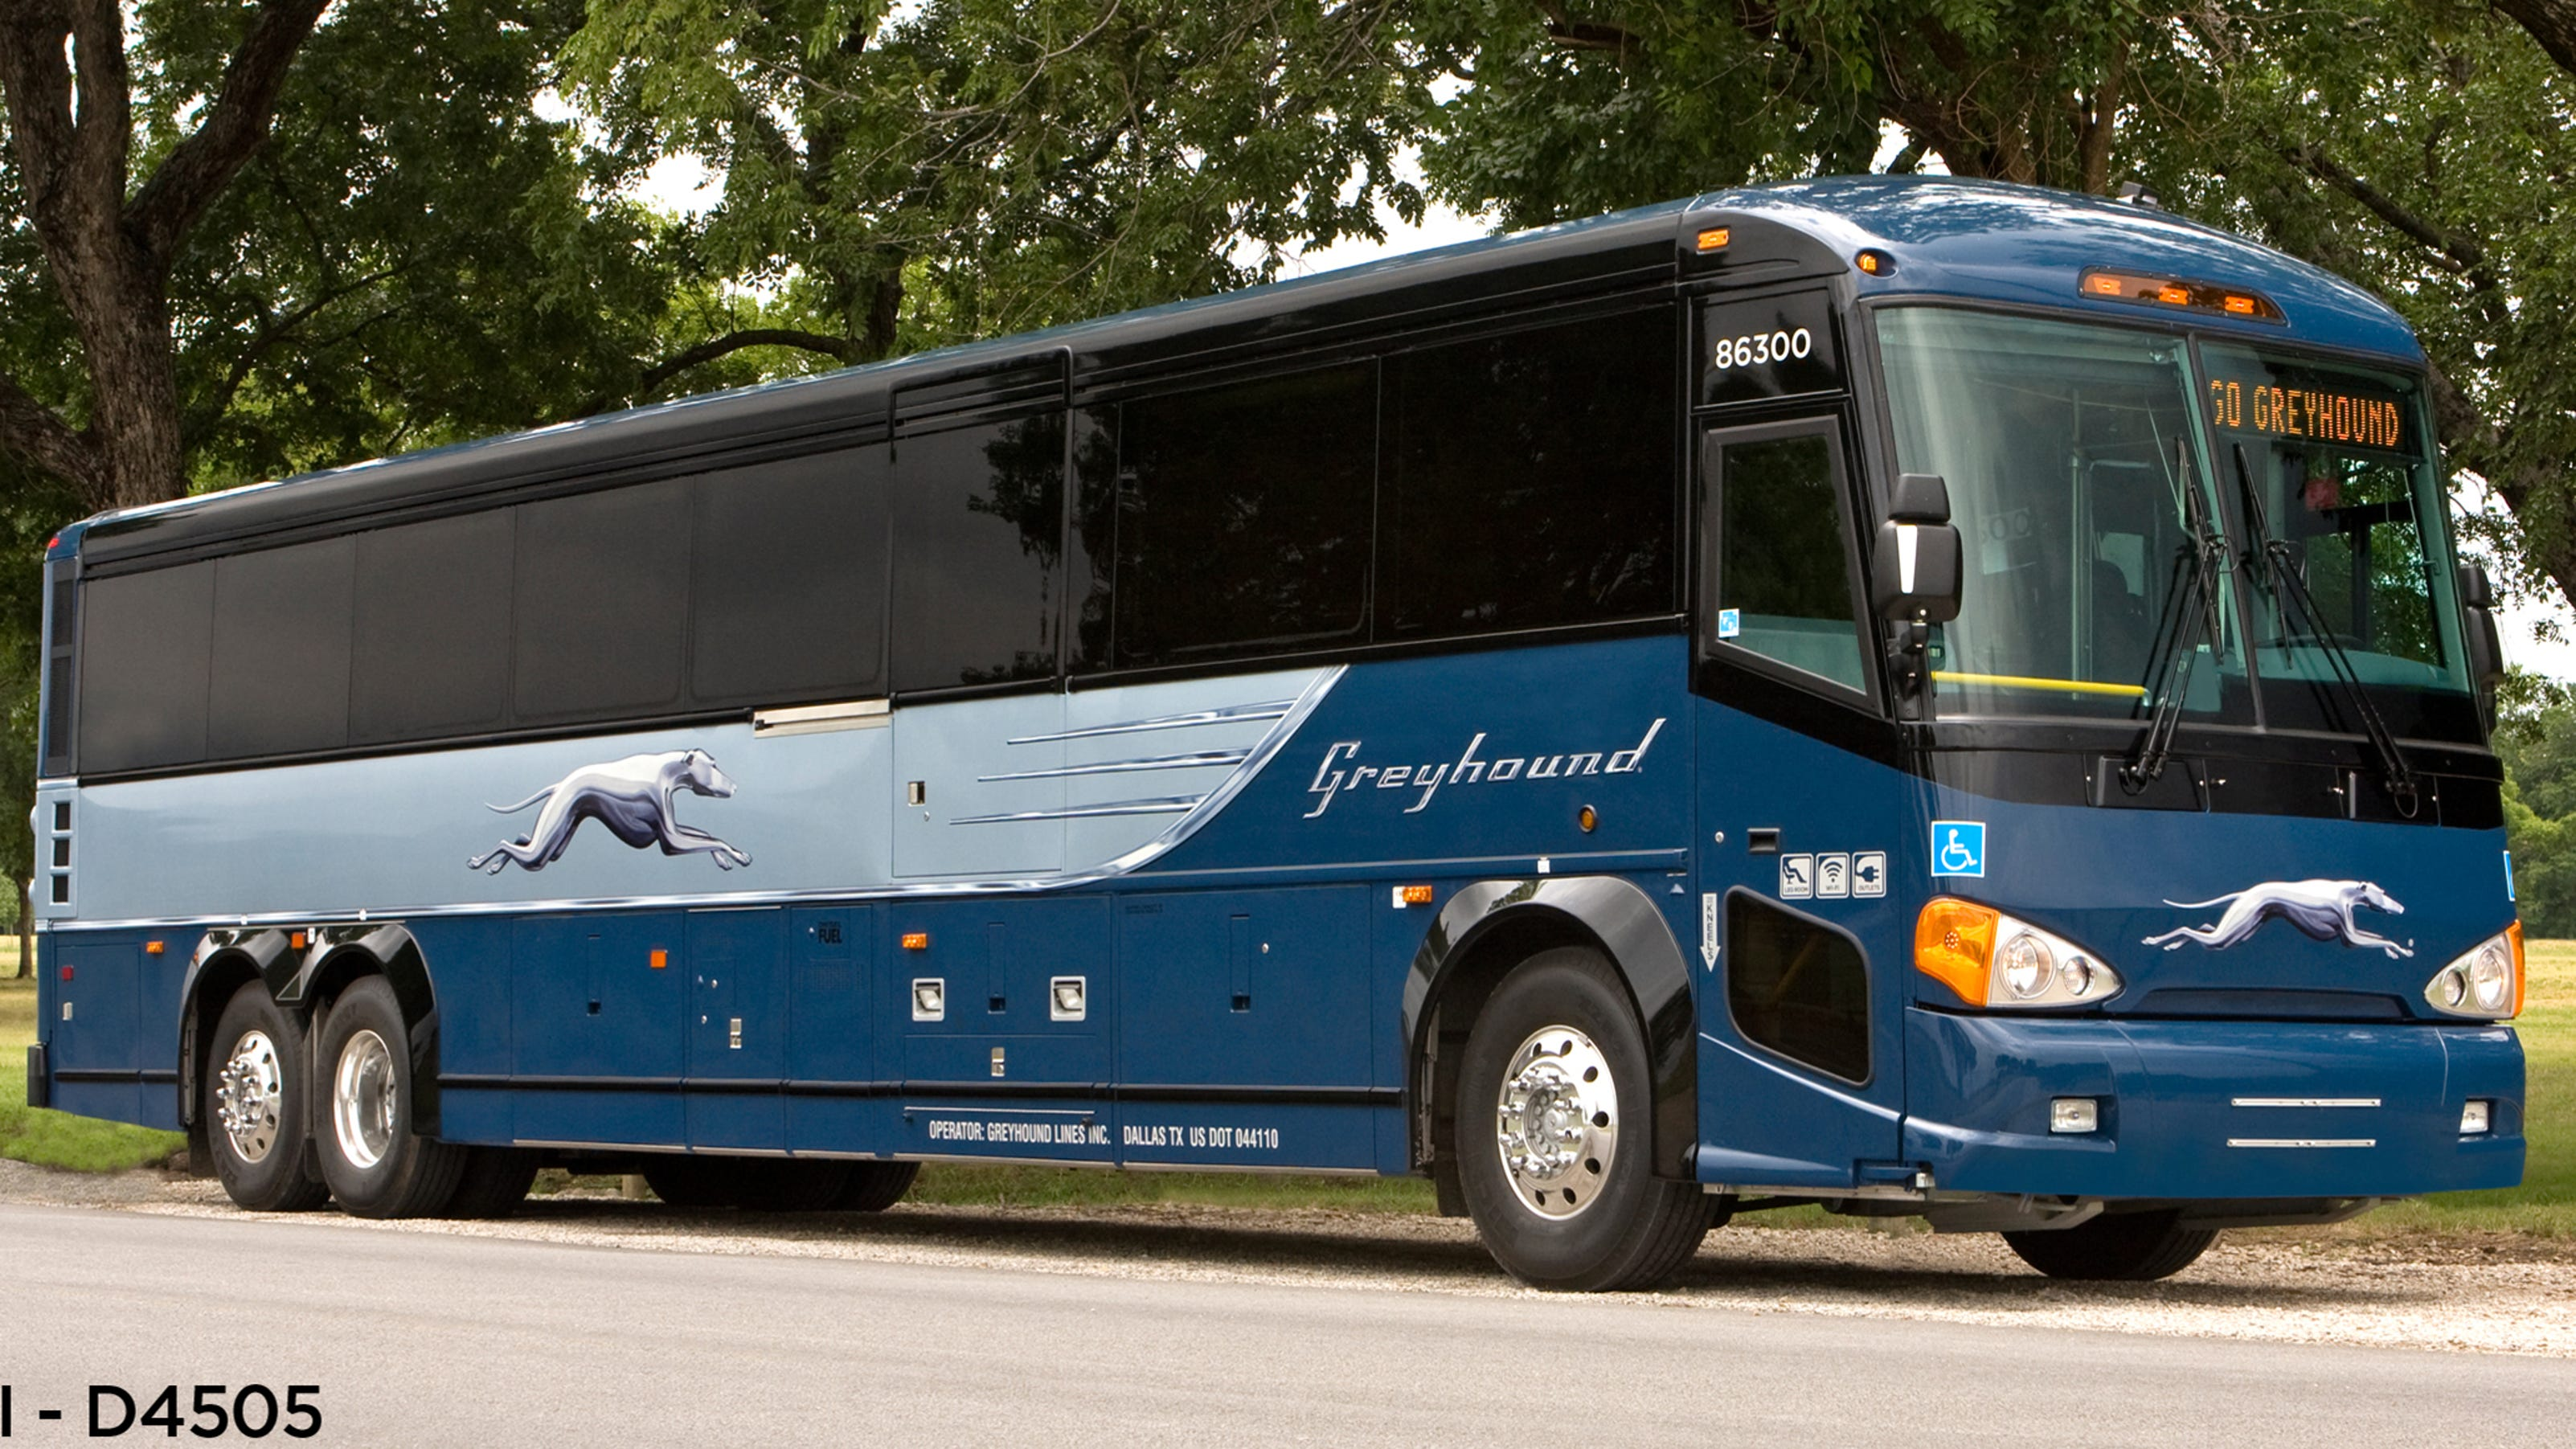 Blue Bathrooms Greyhound Remakes Itself For A New Generation